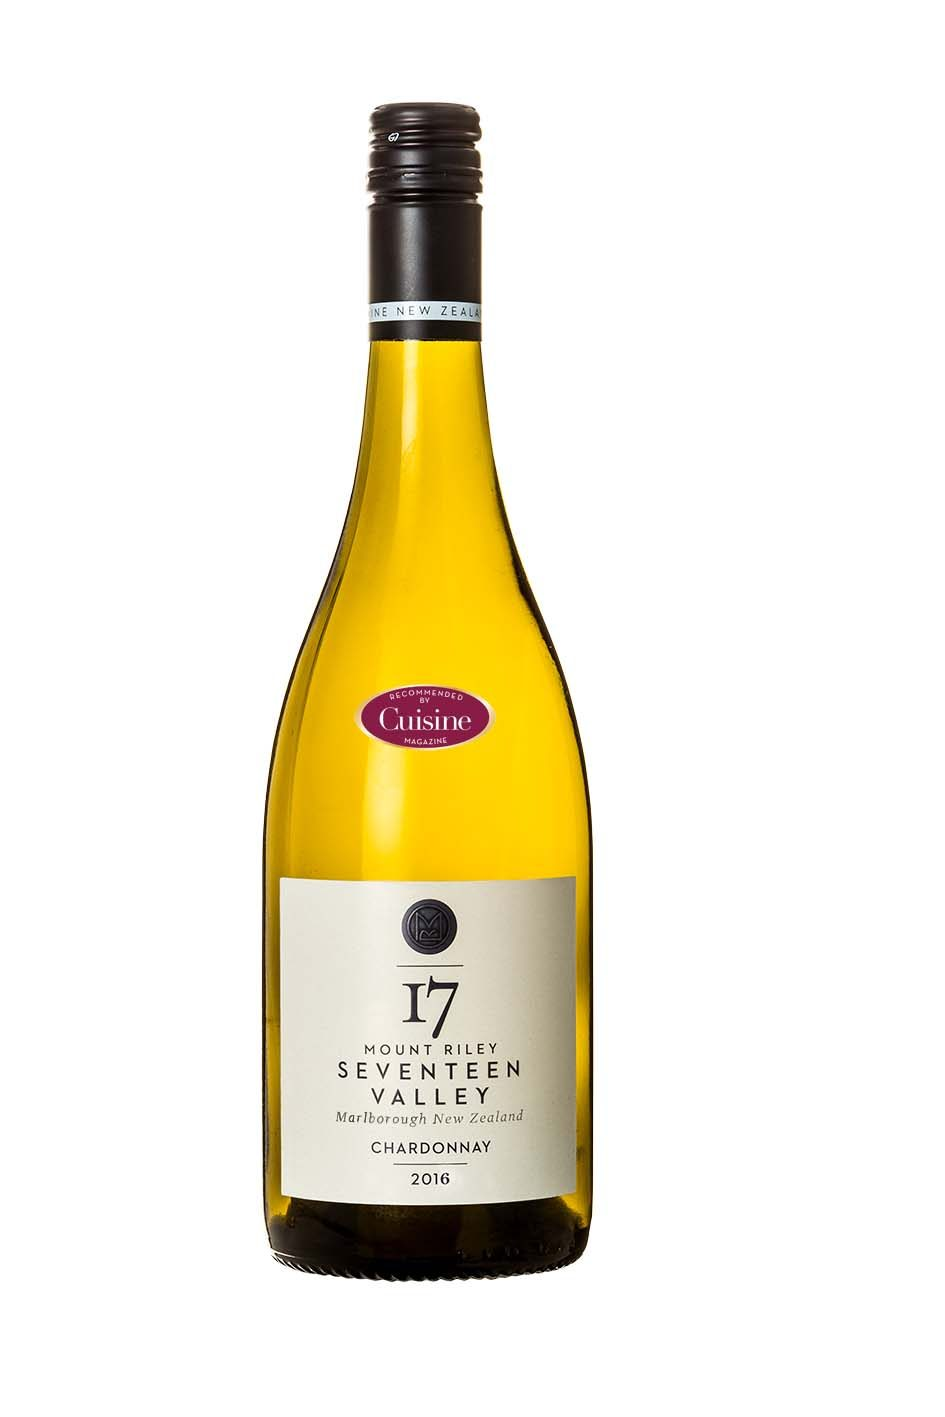 Mount Riley Seventeen Valley Chardonnay 2016